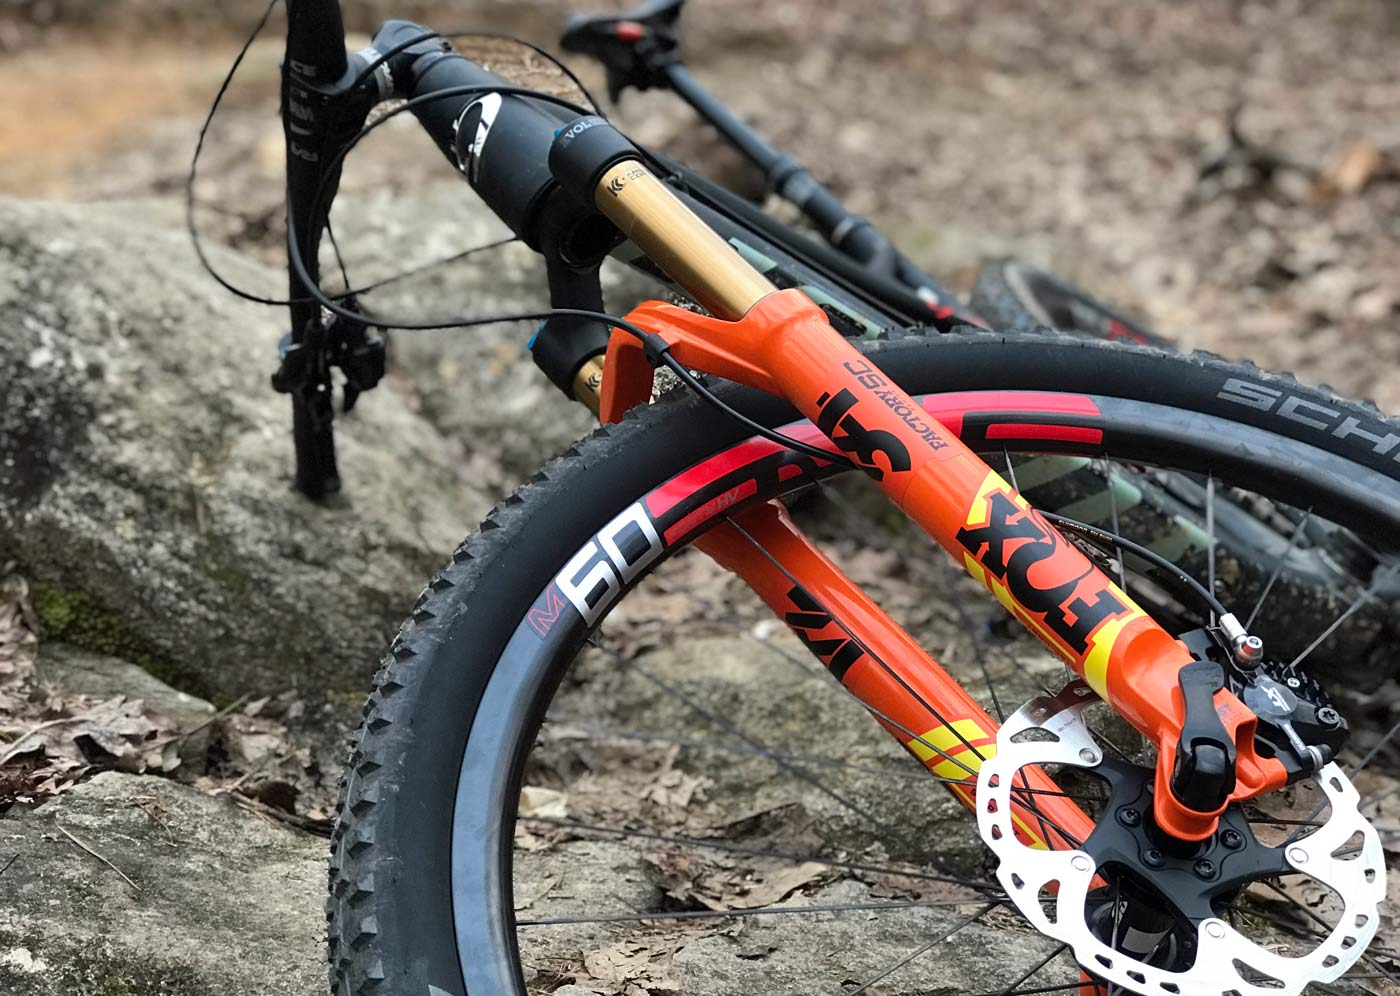 All-new Fox 34 Step-Cast 120mm fork sheds weight, shreds